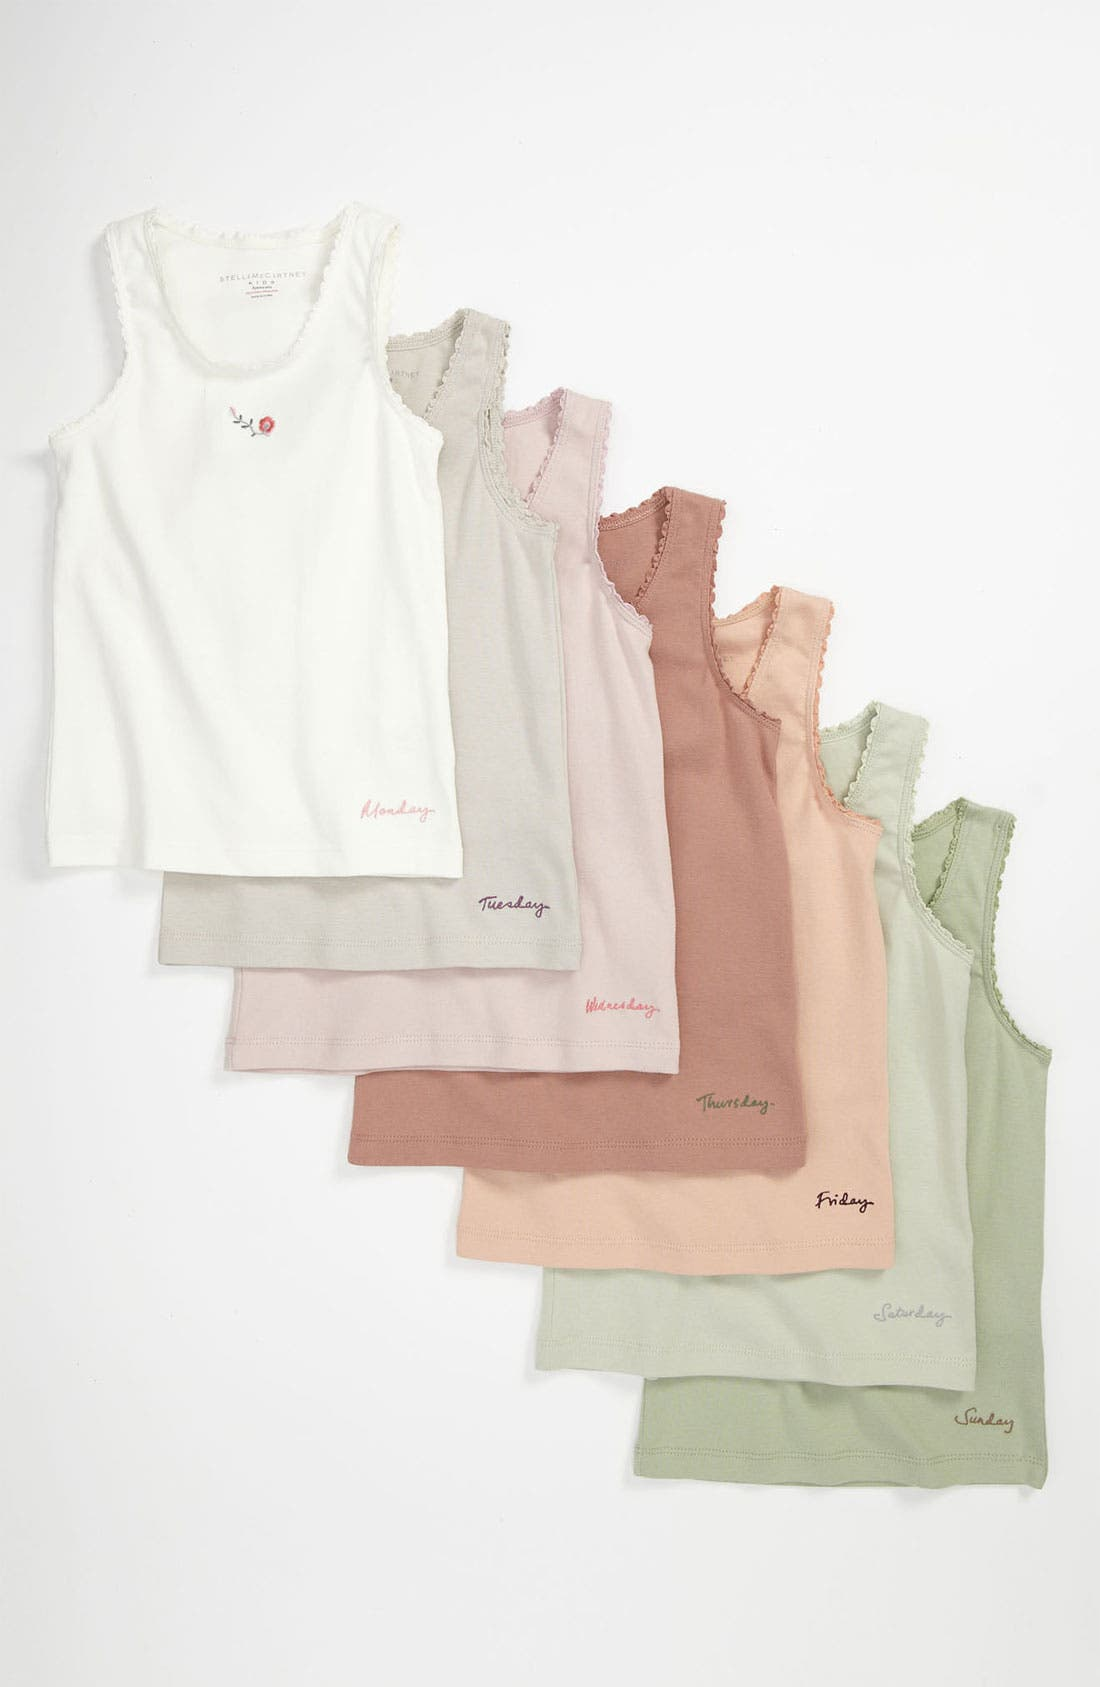 Alternate Image 1 Selected - Stella McCartney Kids 'Clementina' Tank Top (Set of 7) (Toddler, Little Girls & Big Girls)